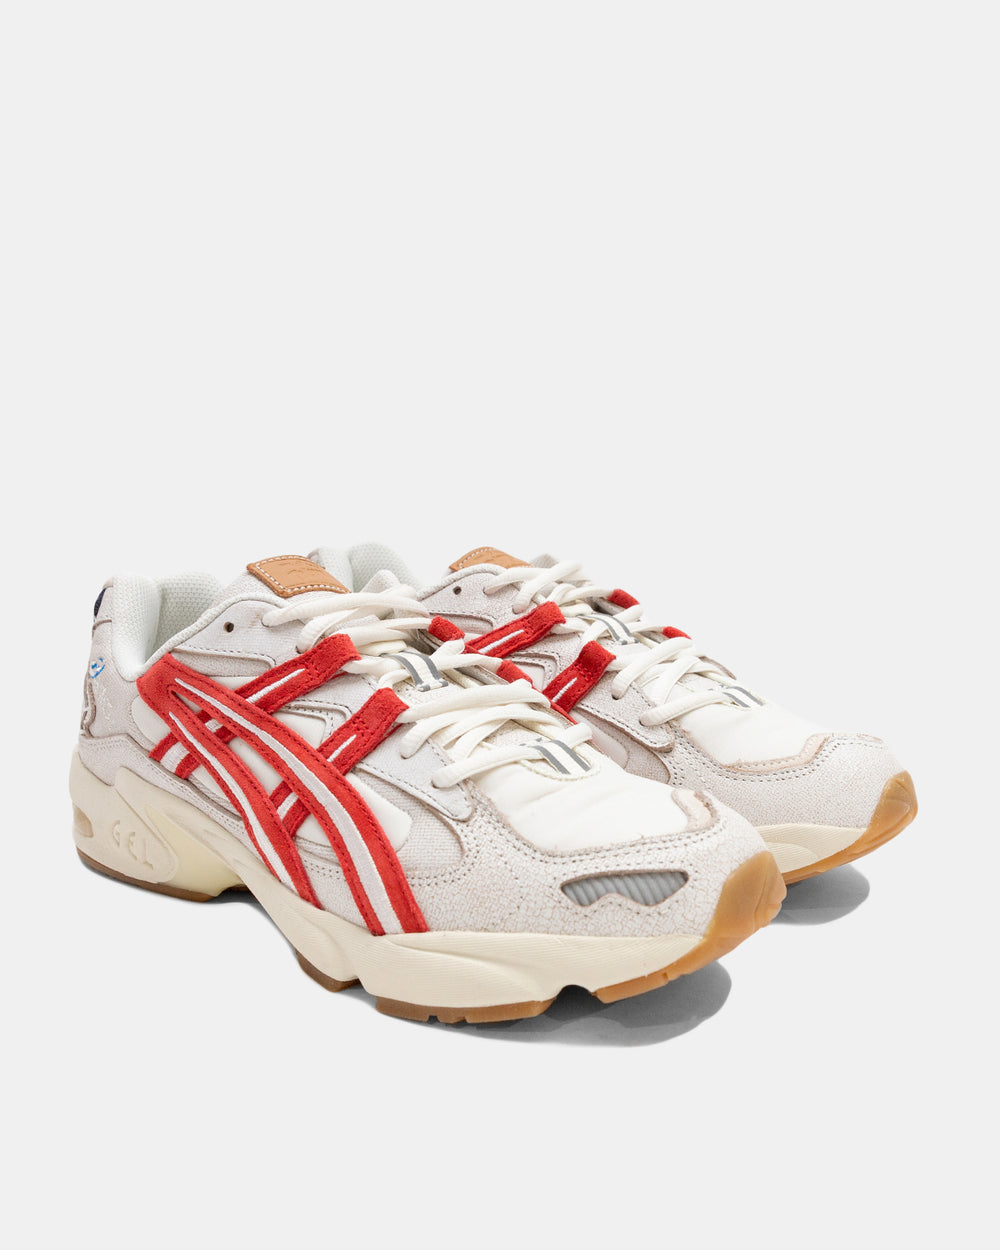 Asics - Gel Kayano 5 OG Retro (Cream | Classic Red)